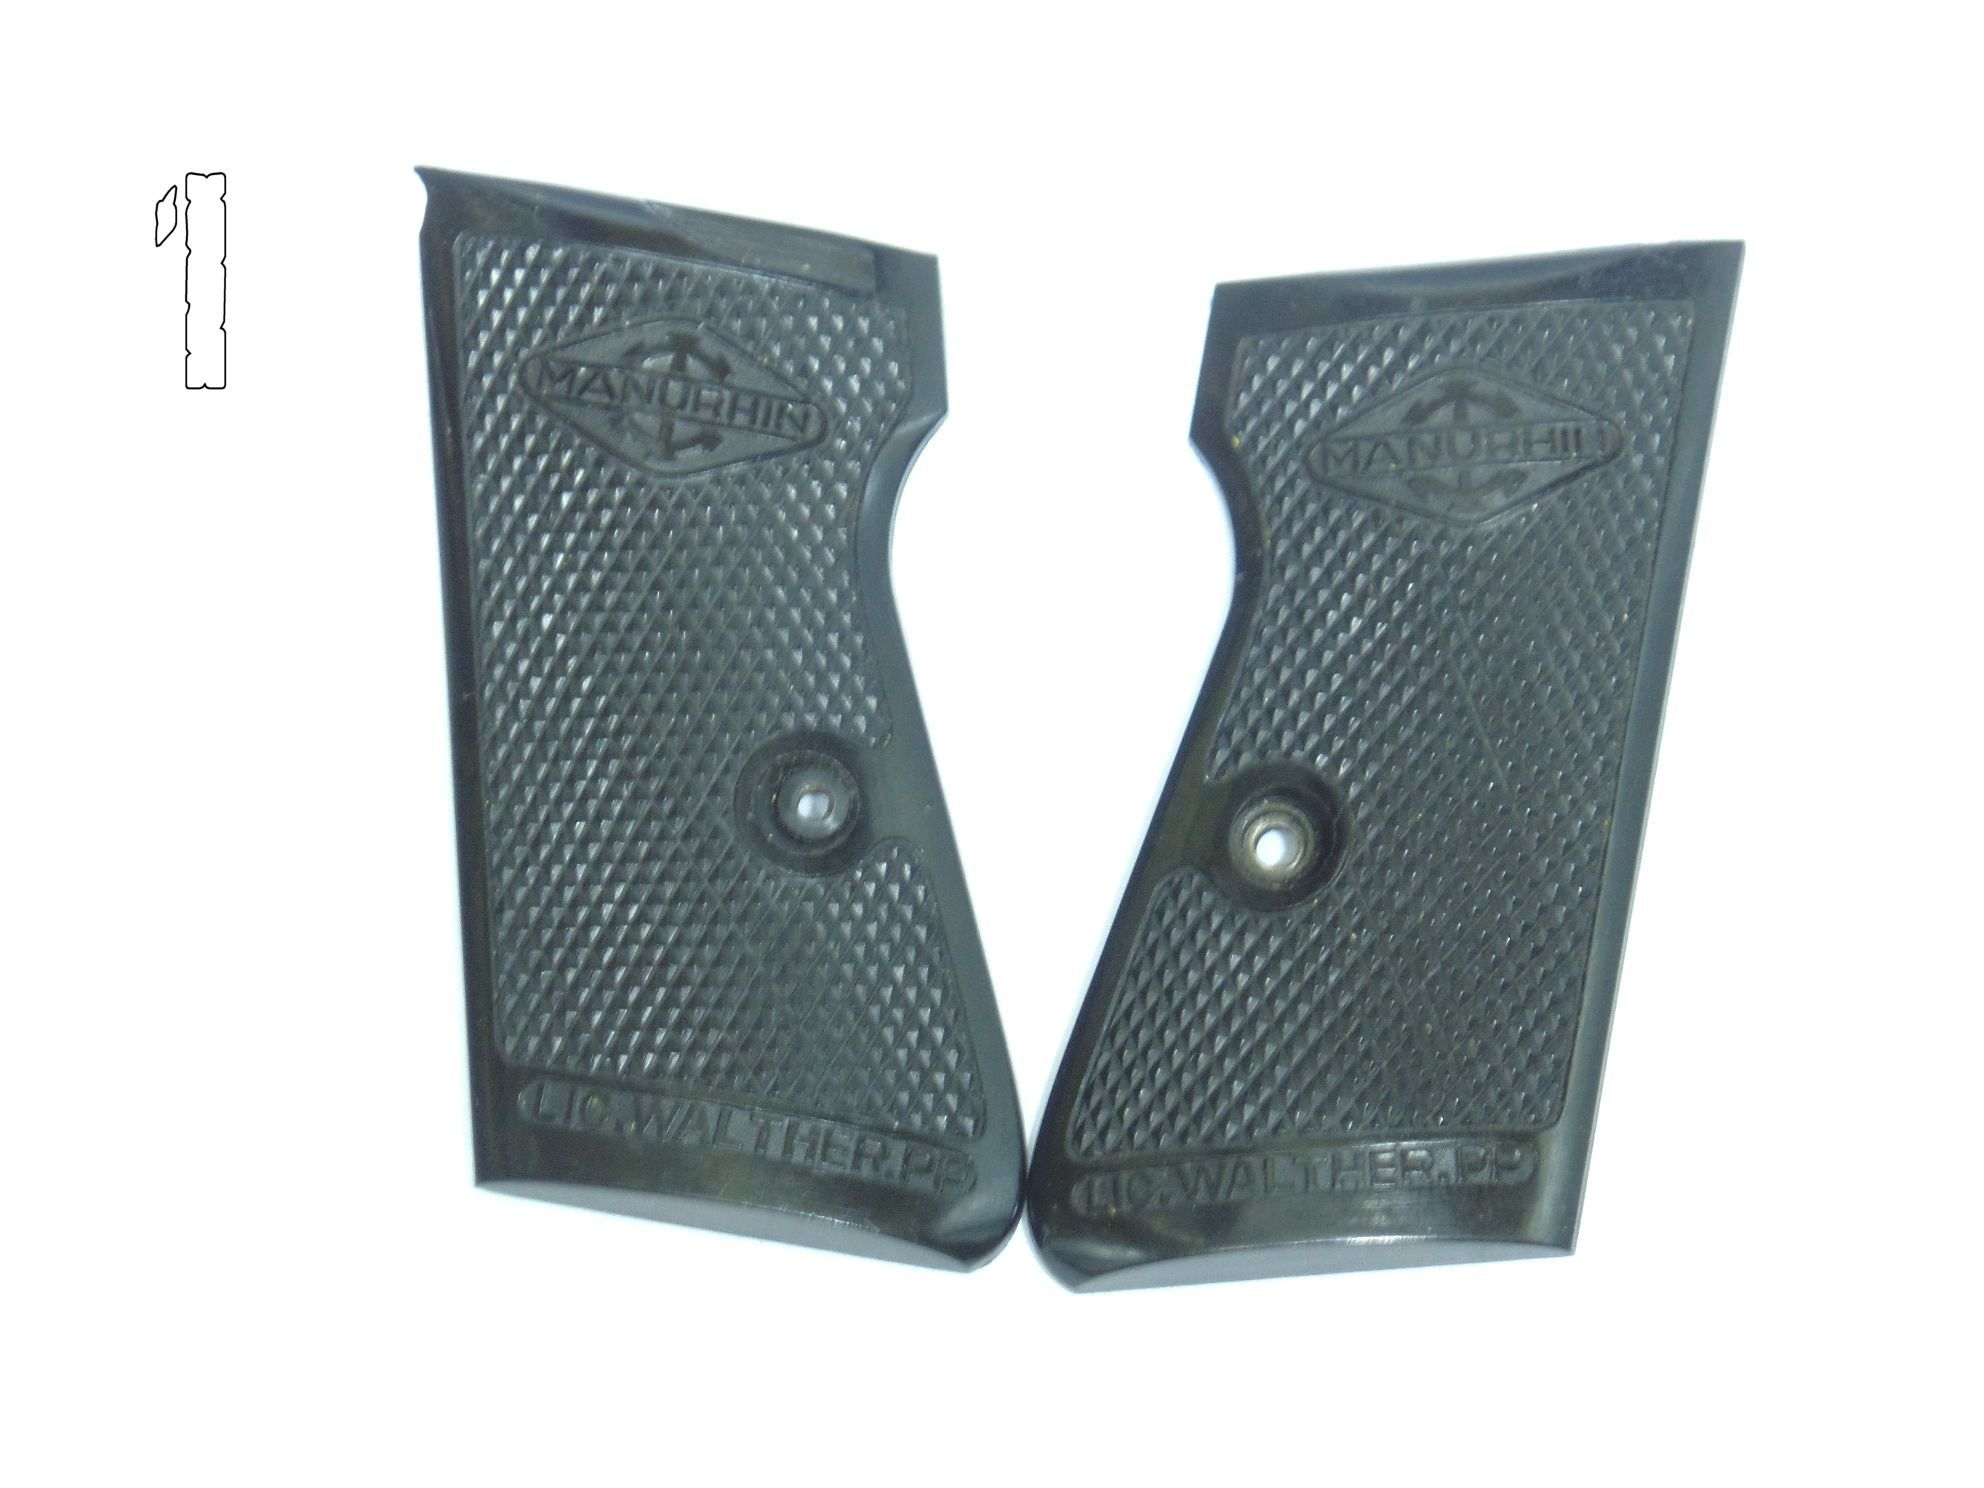 Plaquettes Walther PP / PPK